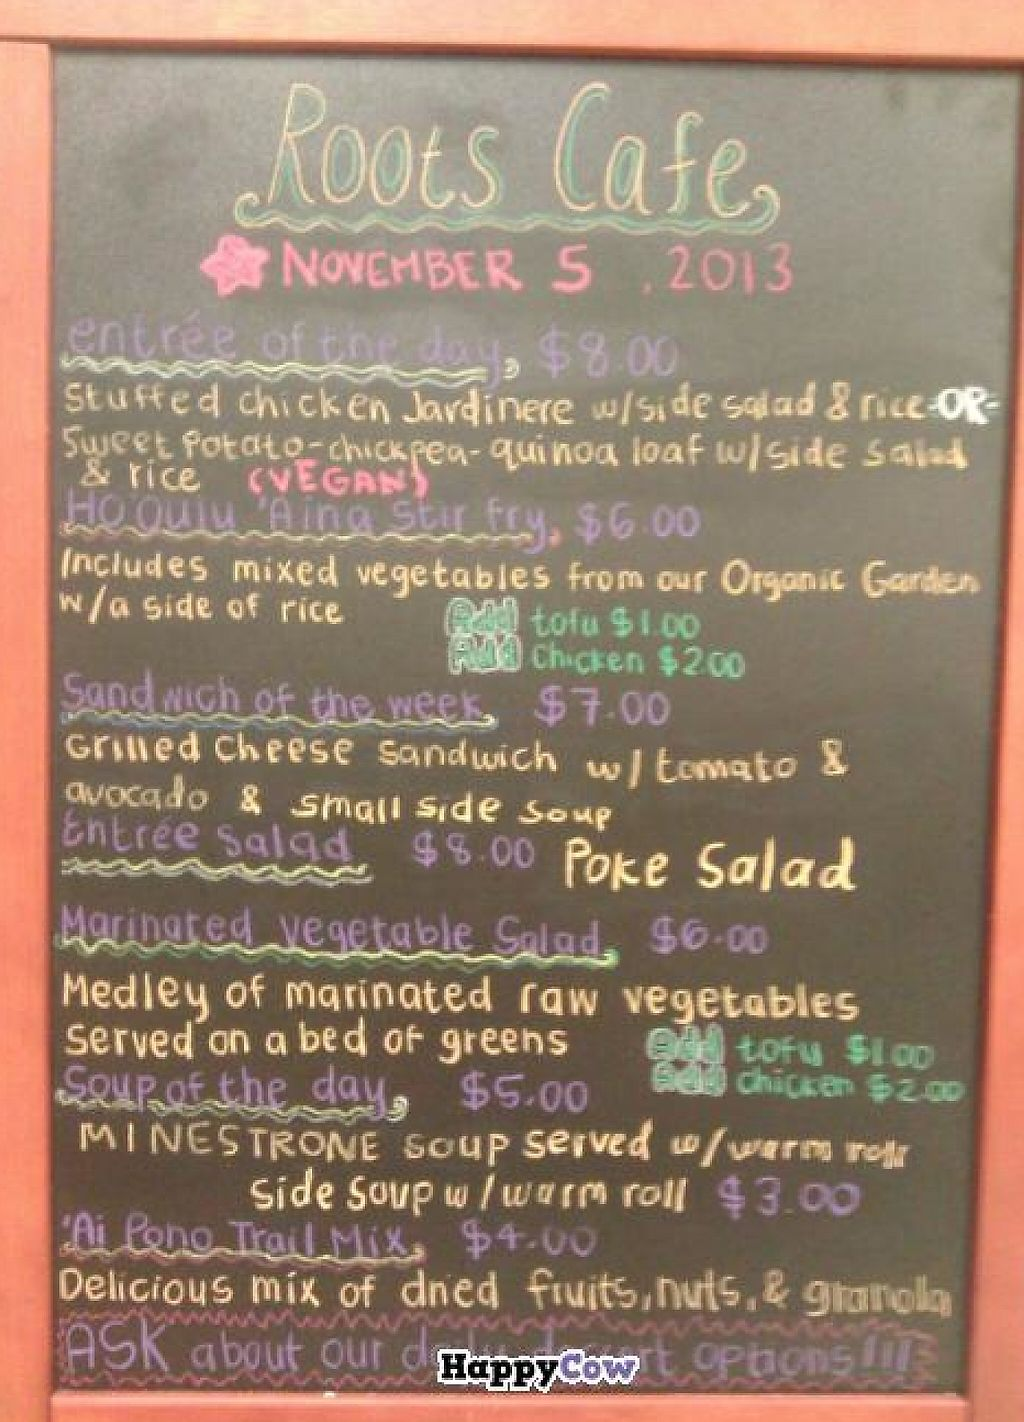 """Photo of Roots Cafe  by <a href=""""/members/profile/Star%20Thrower"""">Star Thrower</a> <br/>Menu changes daily.  Always a vegetarian option. Always delicious and affordable! <br/> November 8, 2013  - <a href='/contact/abuse/image/42790/199322'>Report</a>"""